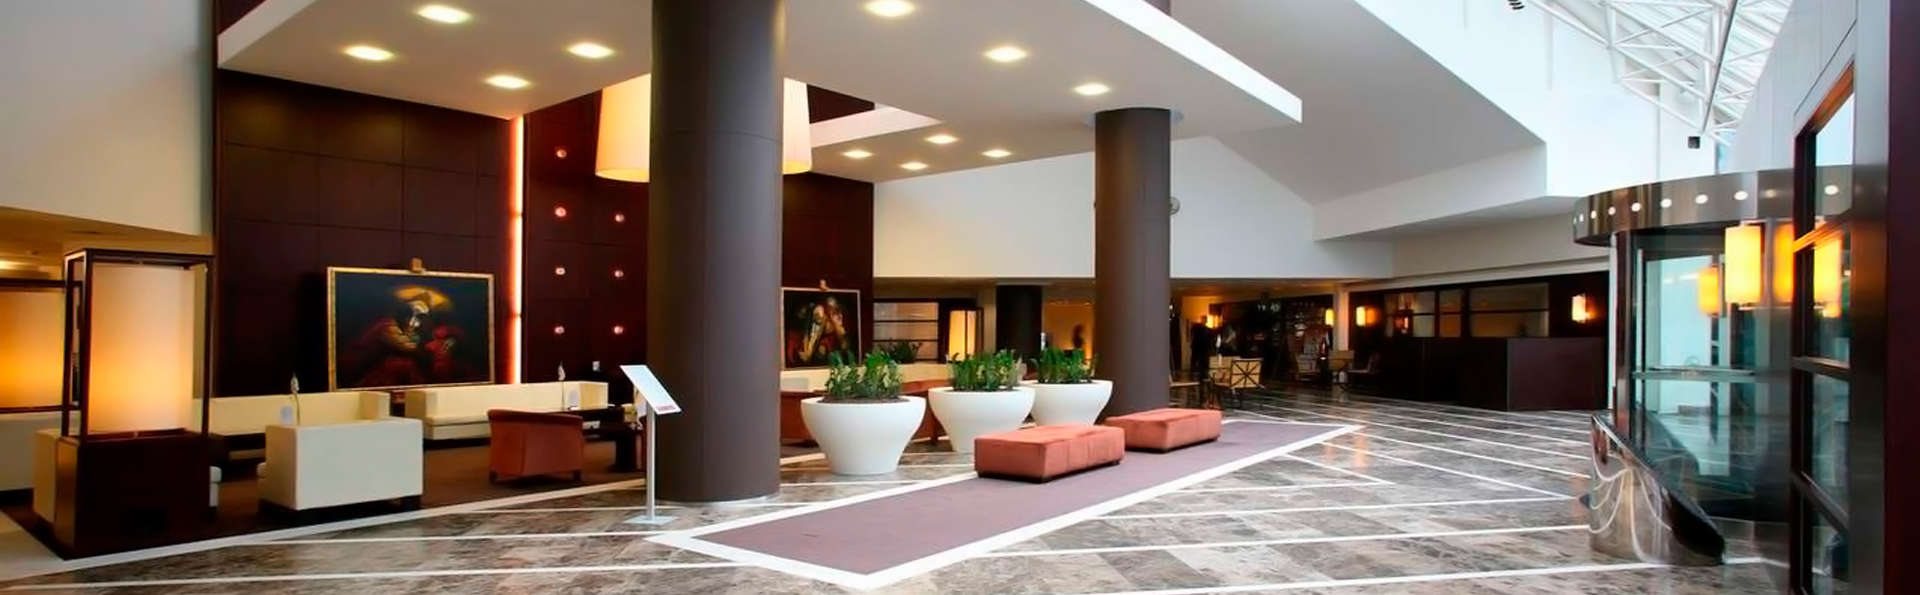 Ramada Plaza Antwerp In Hotel Booking Offers Reviews